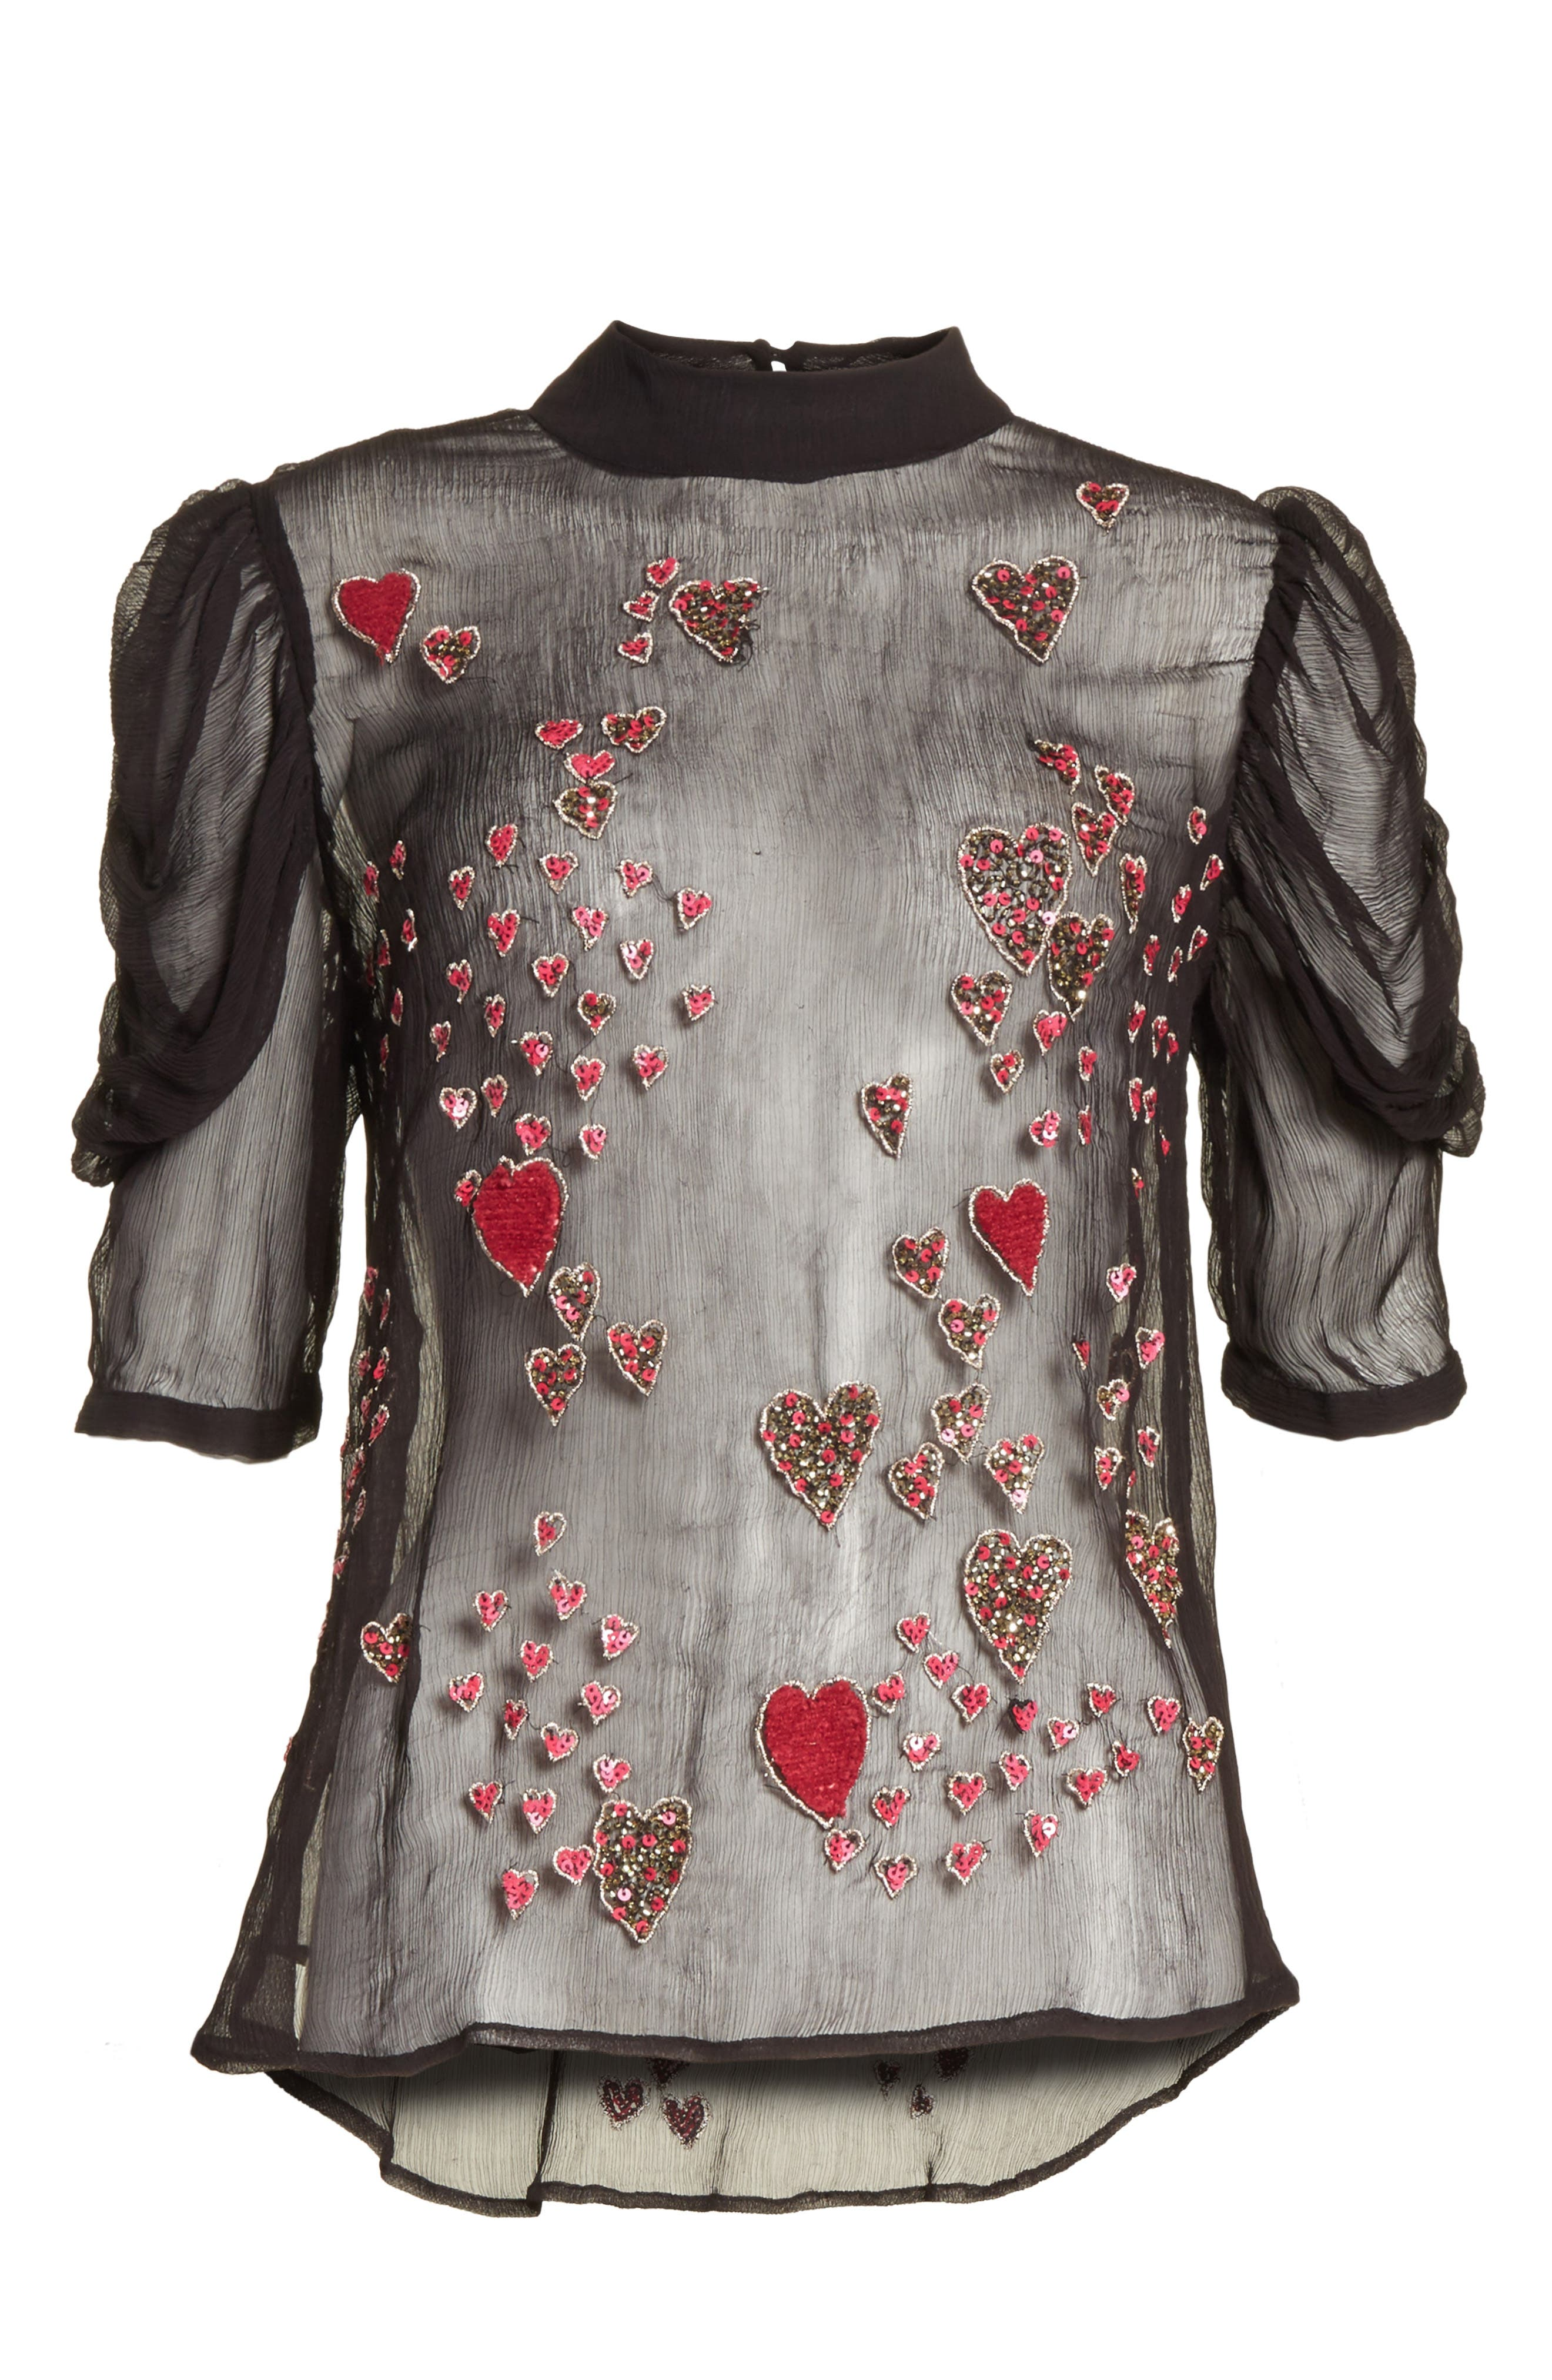 So in Love Embroidered Blouse,                             Alternate thumbnail 6, color,                             001